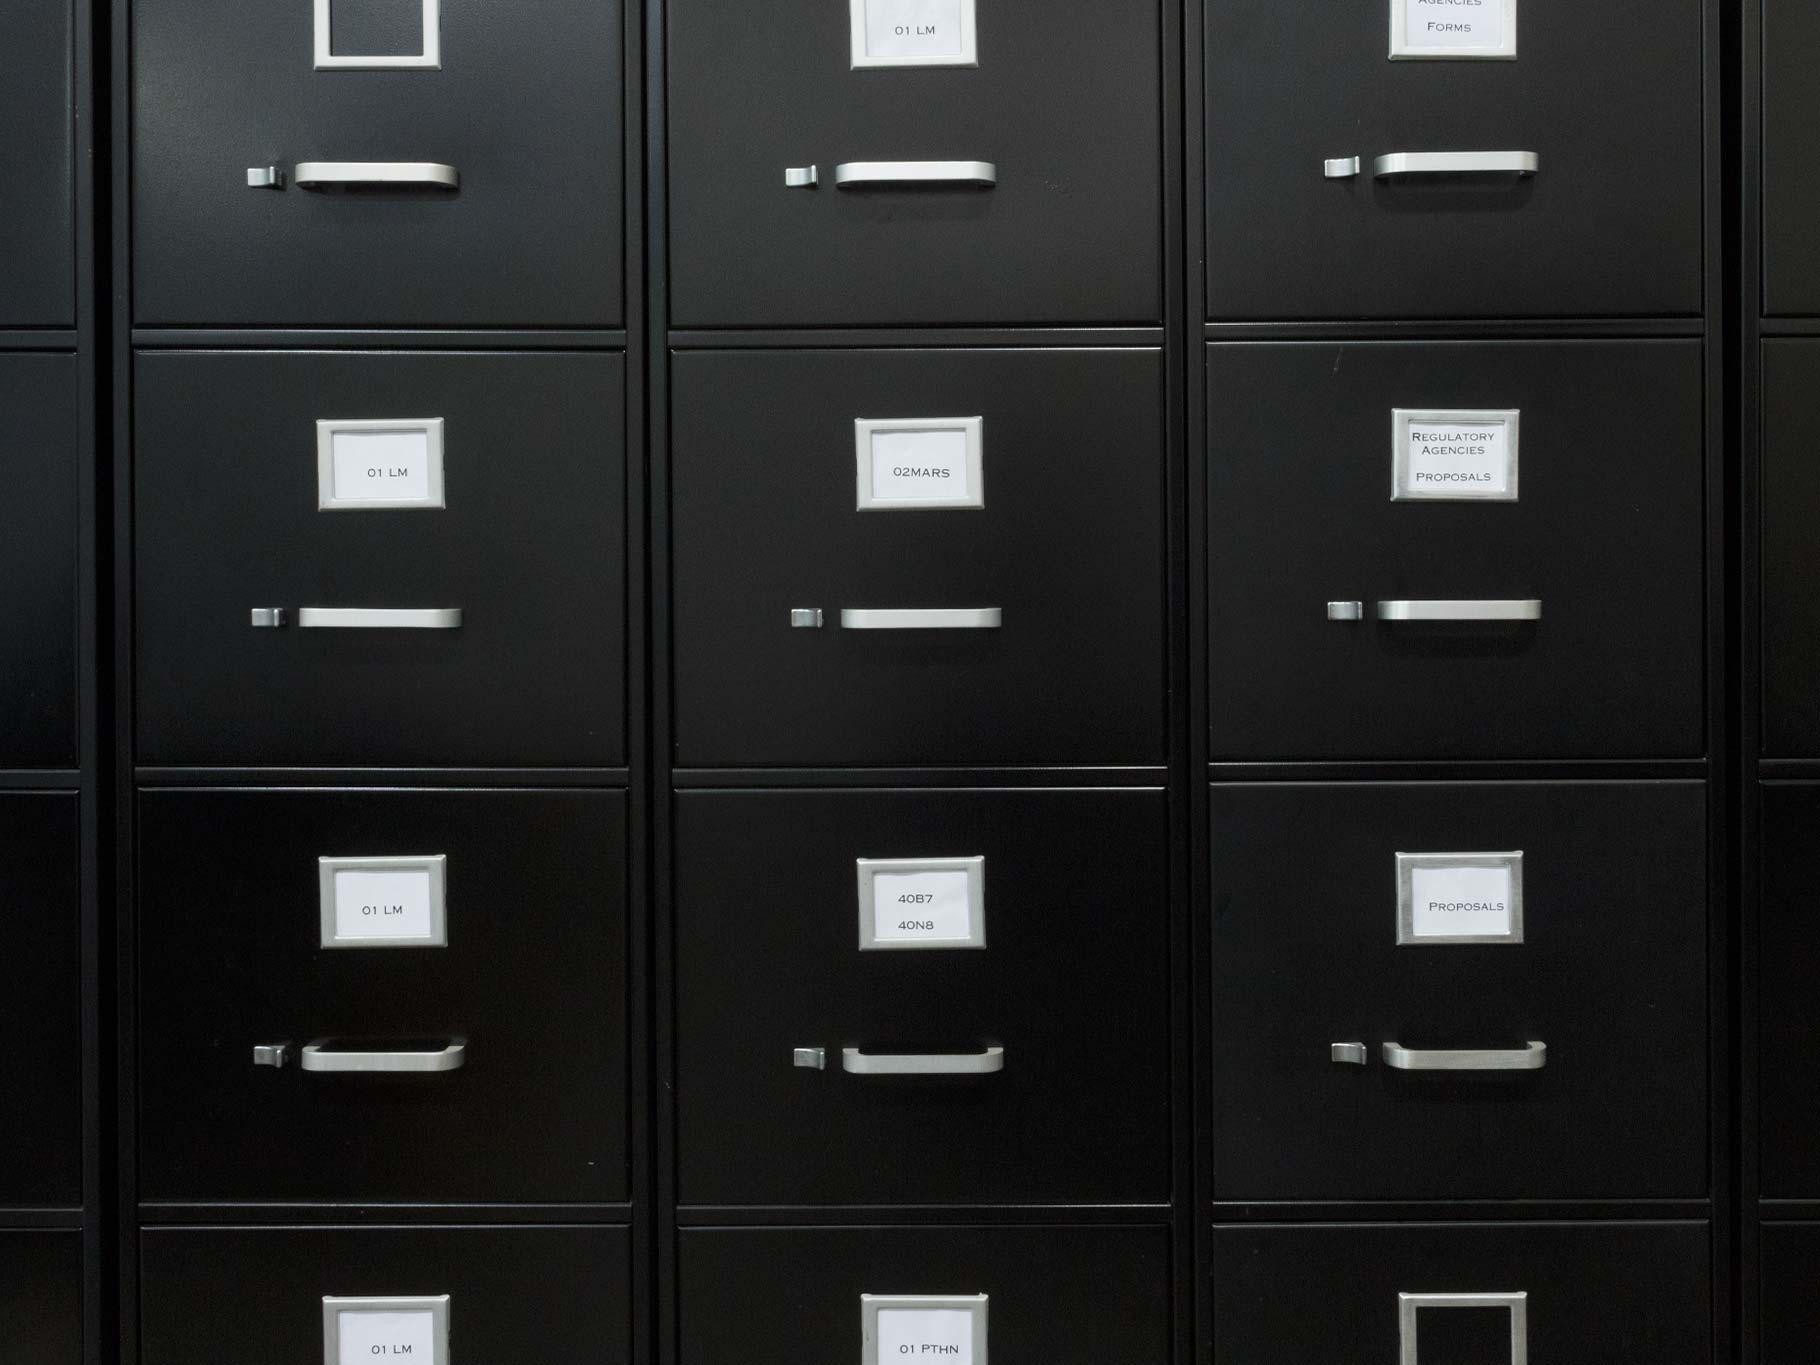 File Cabinets Full of Projects